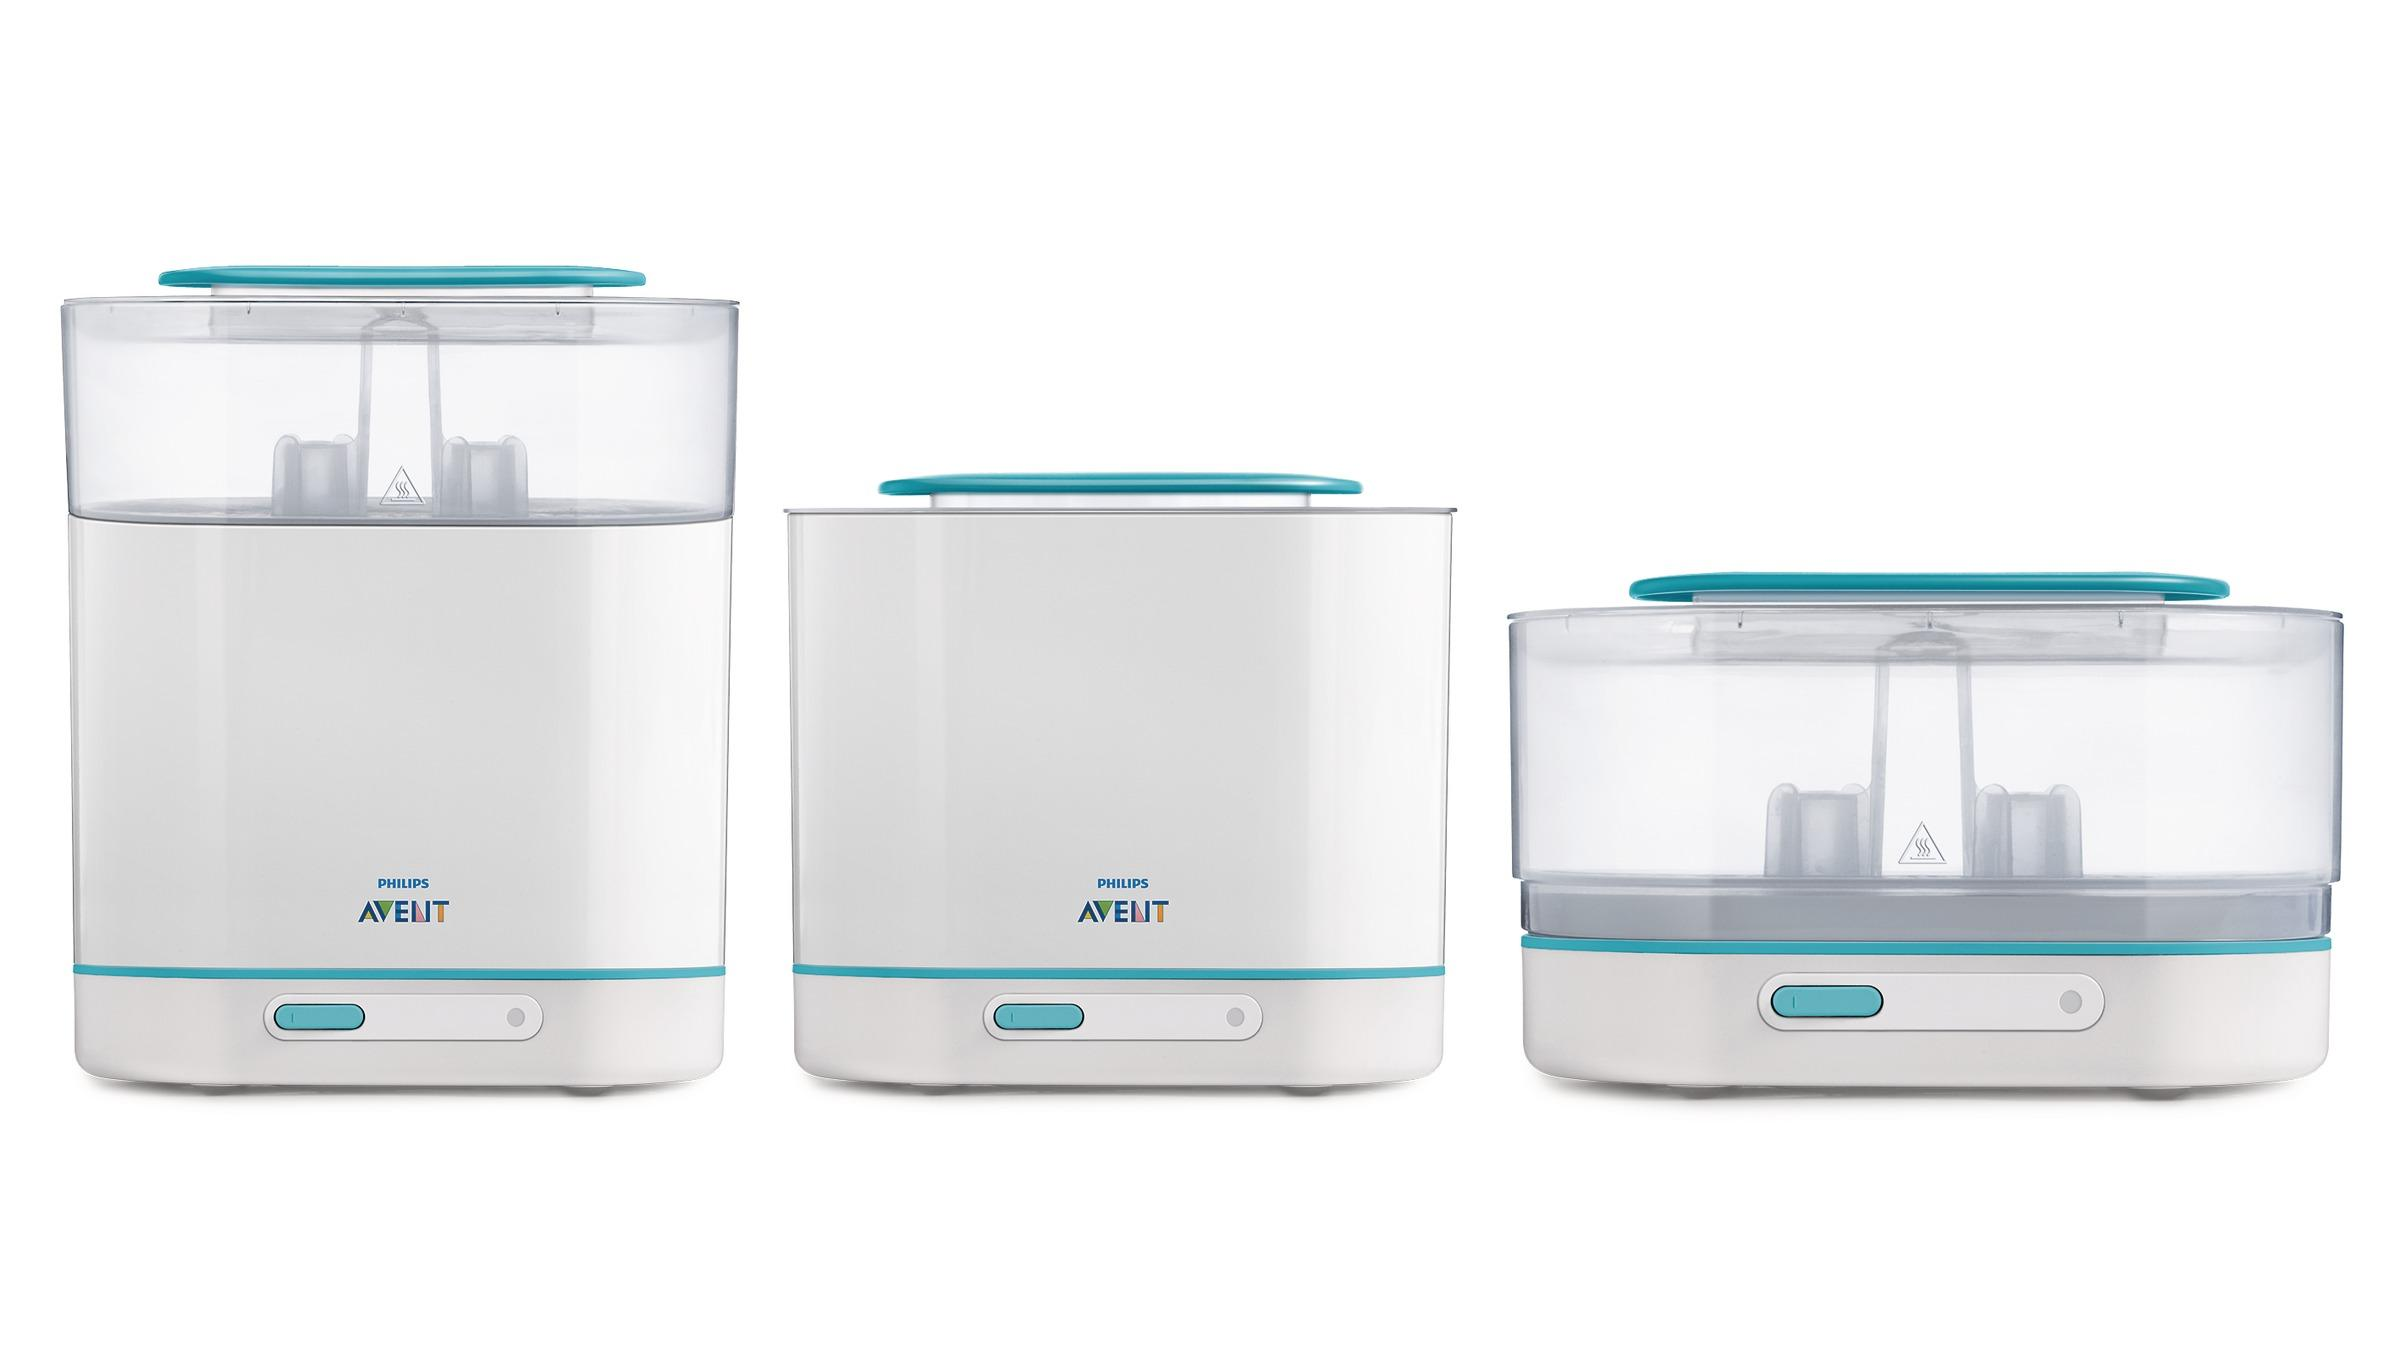 Amazon.com : Philips AVENT 3-in-1 Electric Steam